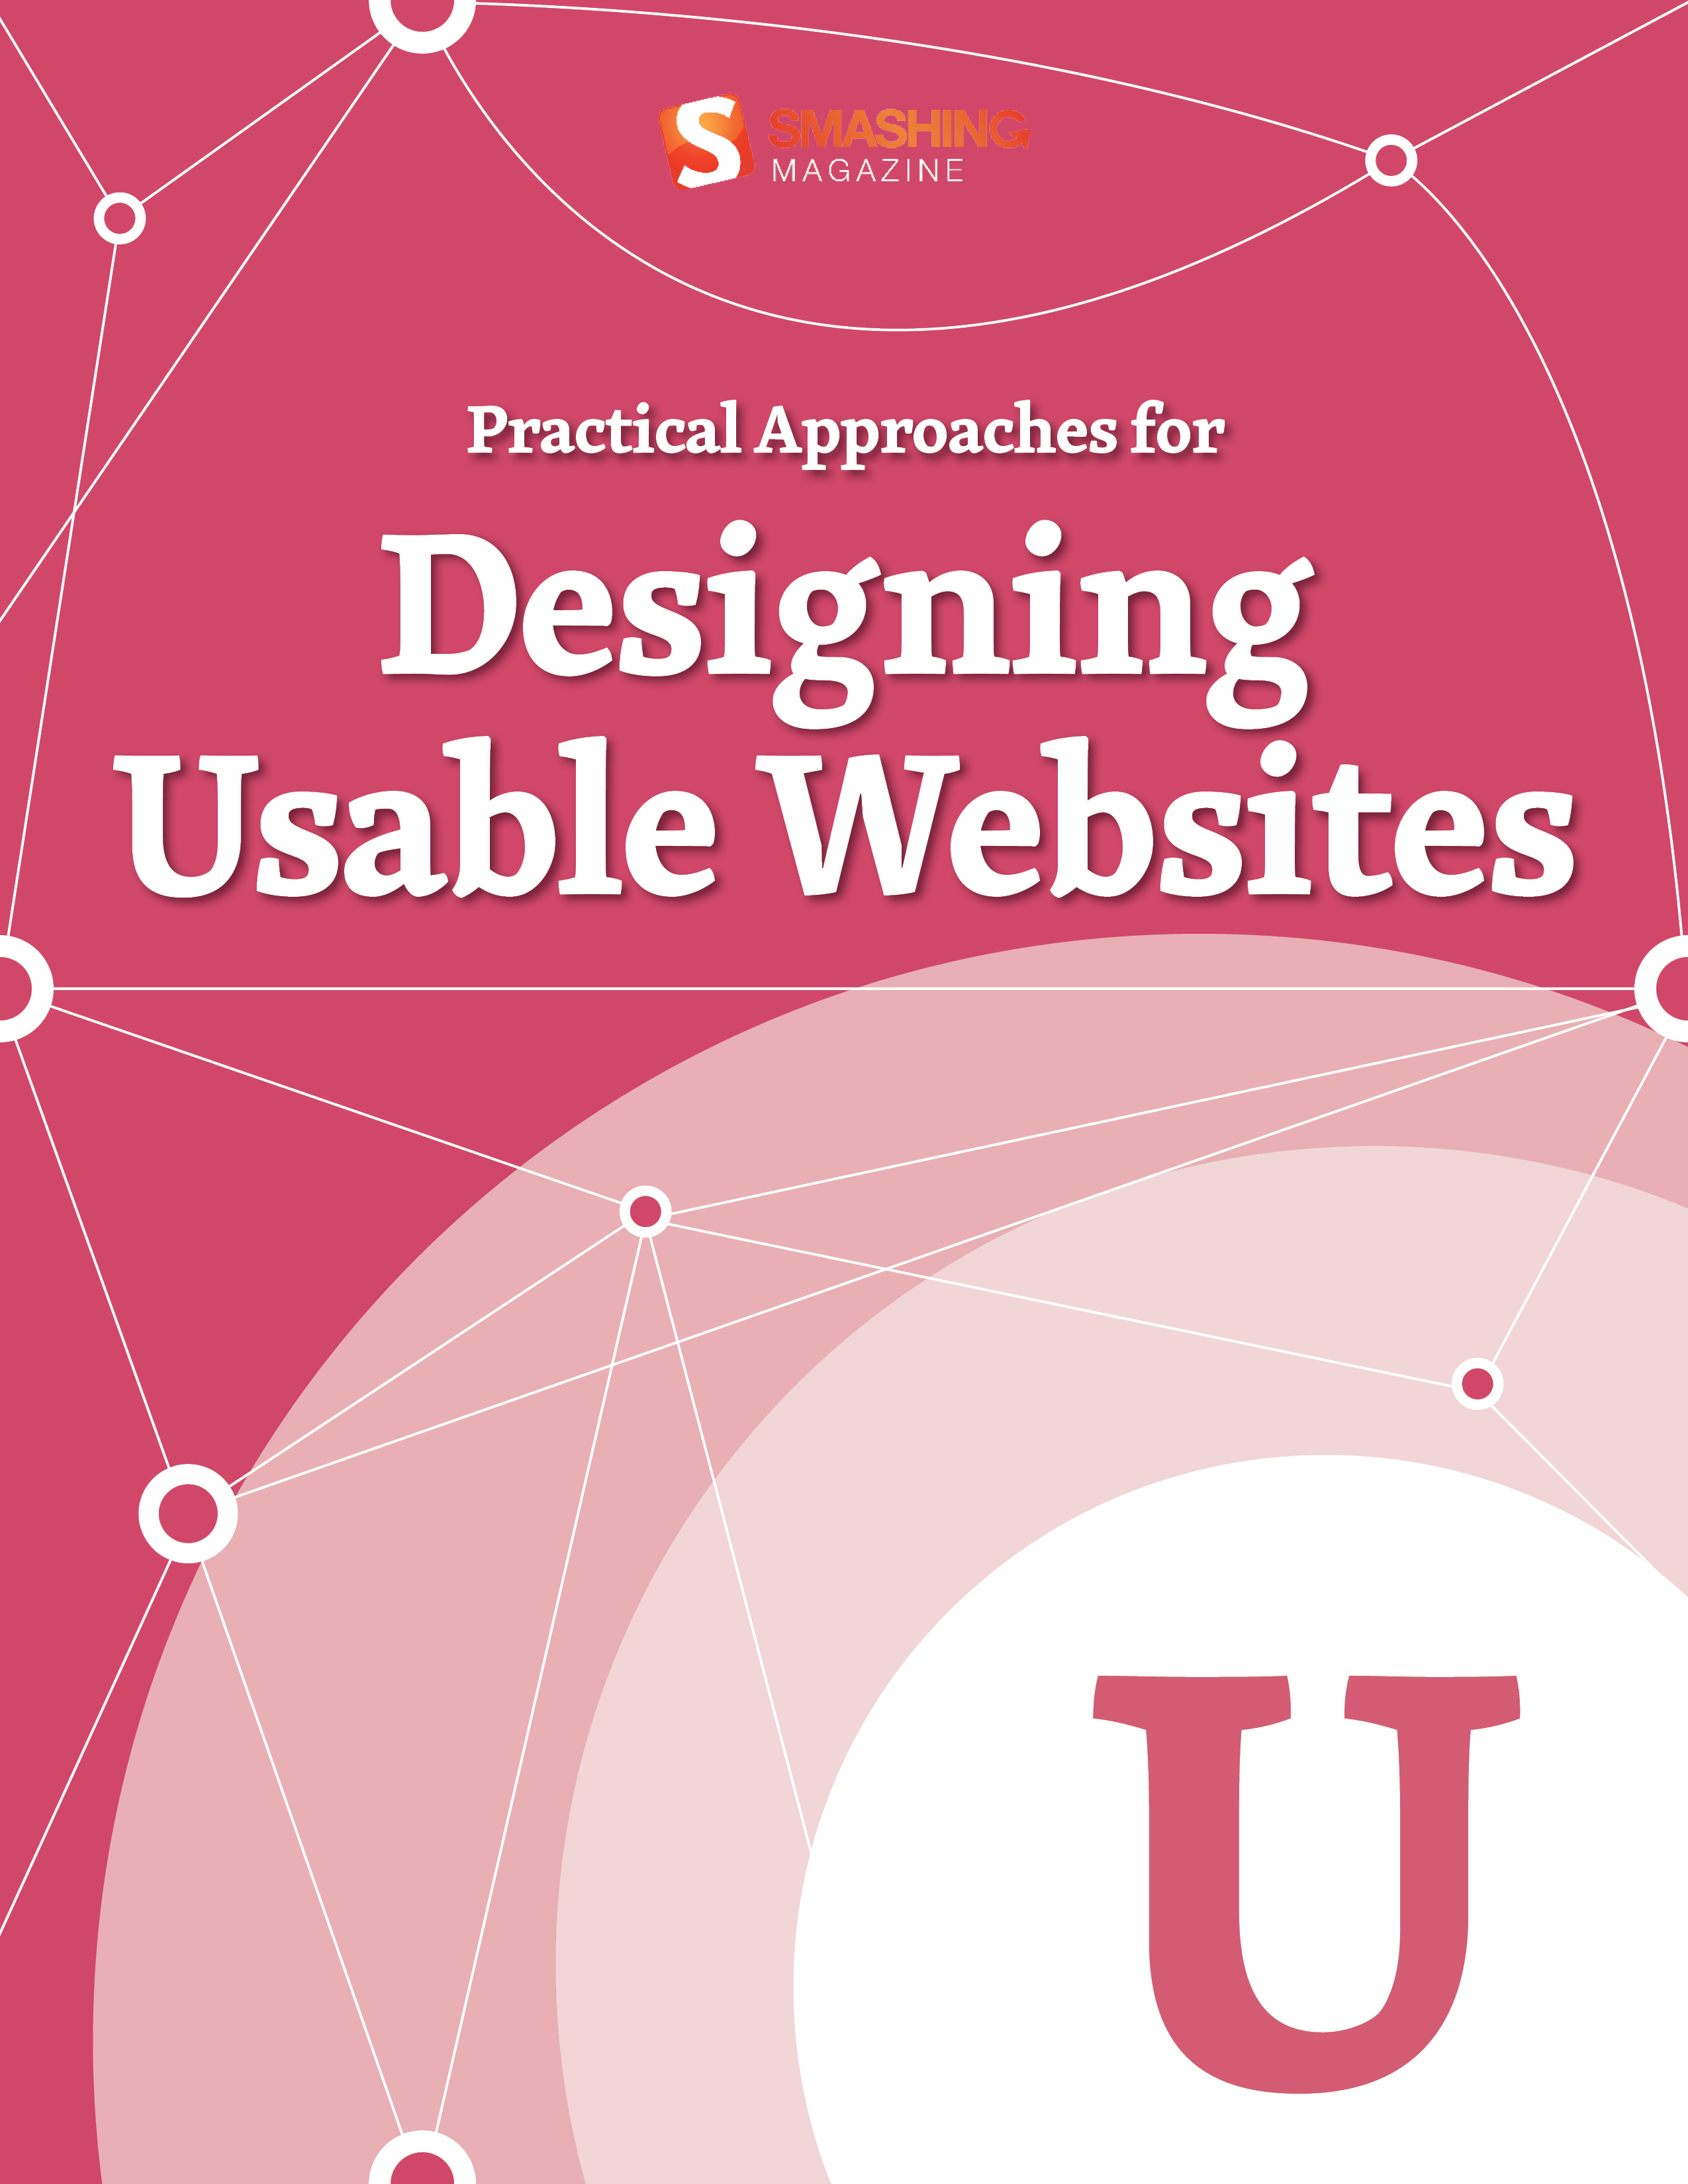 Practical Approaches for Designing Usable Websites By: Smashing Magazine